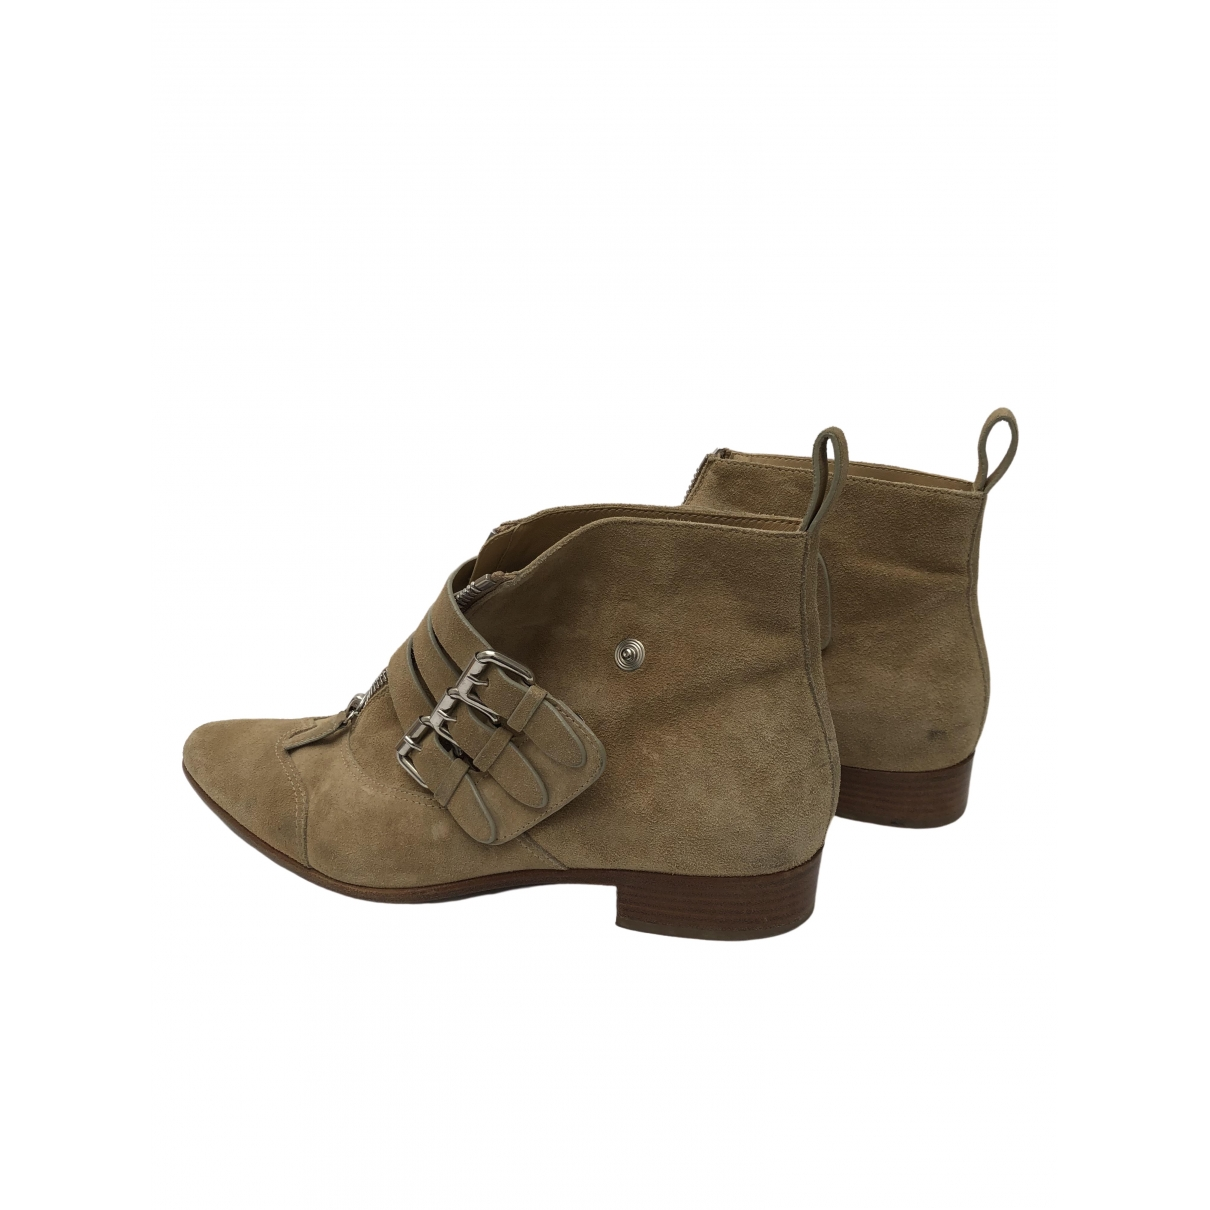 Tabitha Simmons \N Beige Suede Ankle boots for Women 41 IT